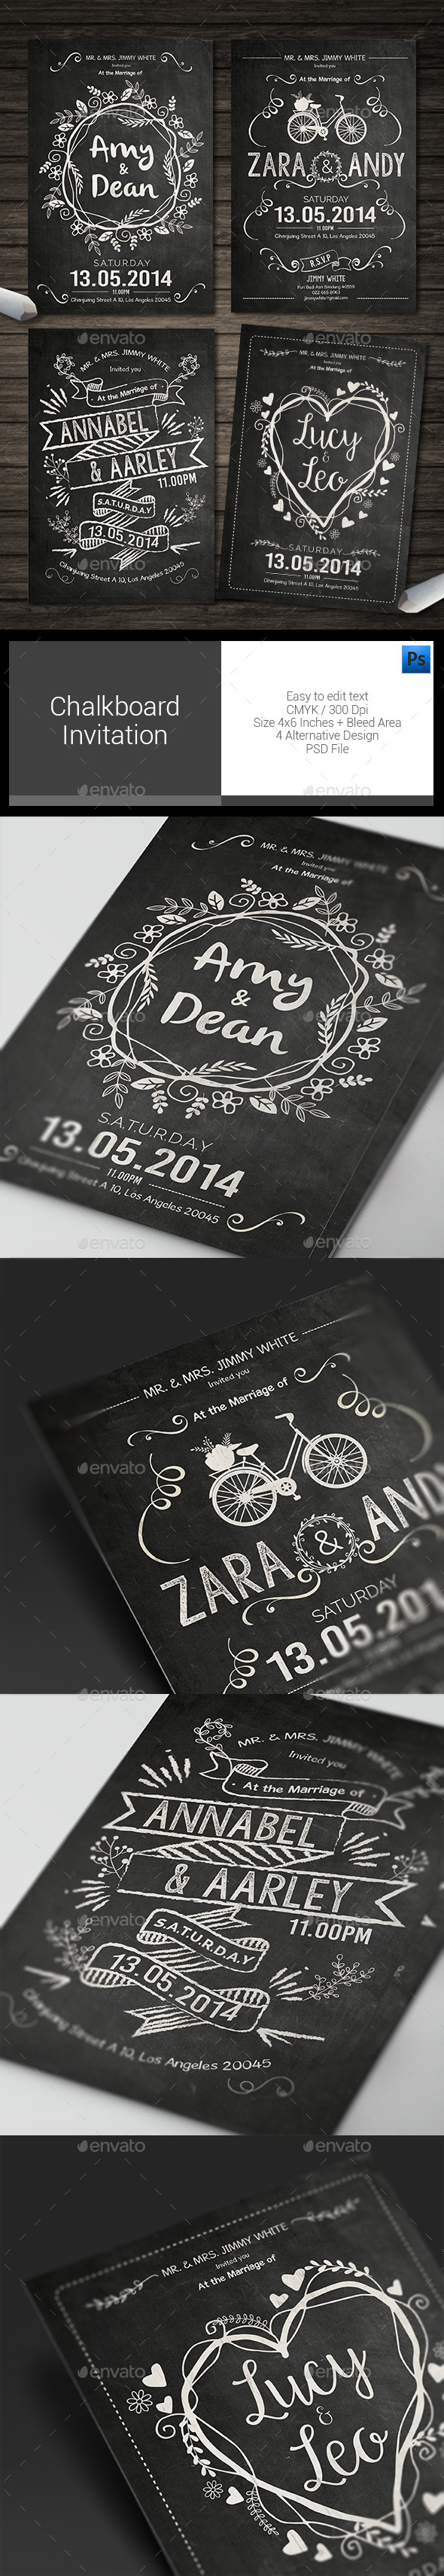 Chalkboard Invitation - Weddings Cards & Invites